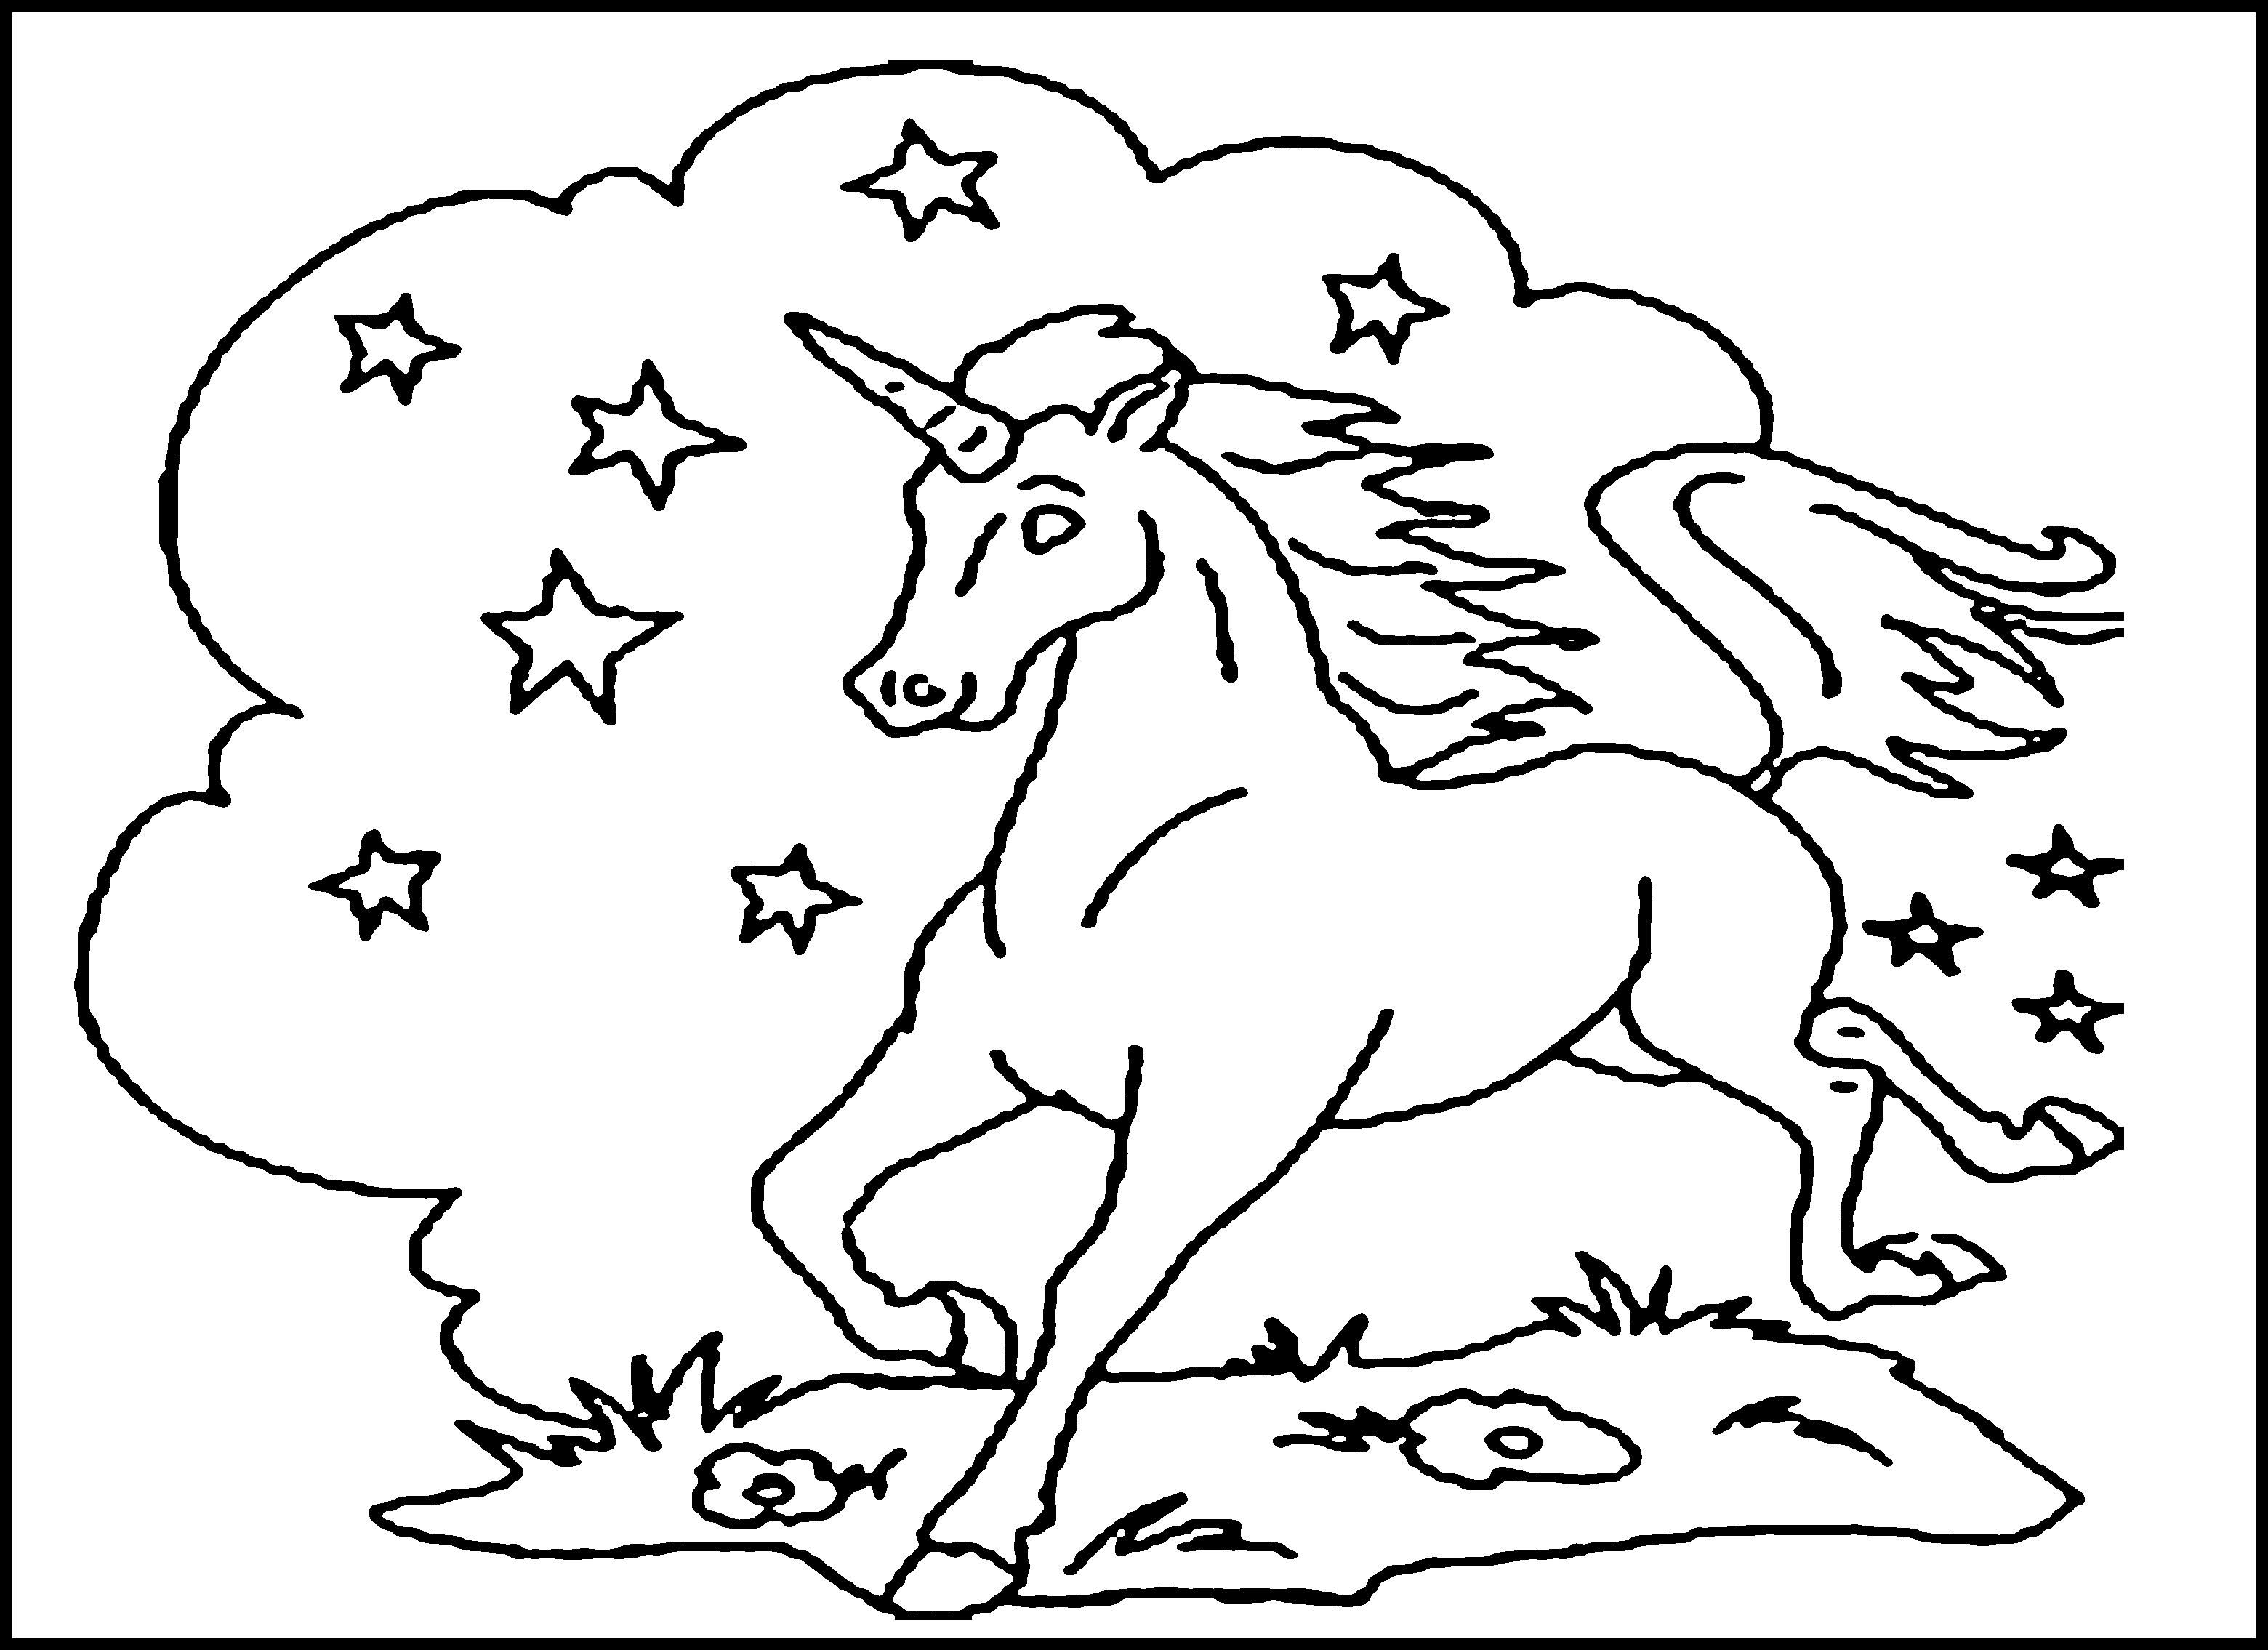 Coloring Page Coloring Pictures For Kids Free Coloring Pages Free Printable Coloring Pages [ 1200 x 1404 Pixel ]